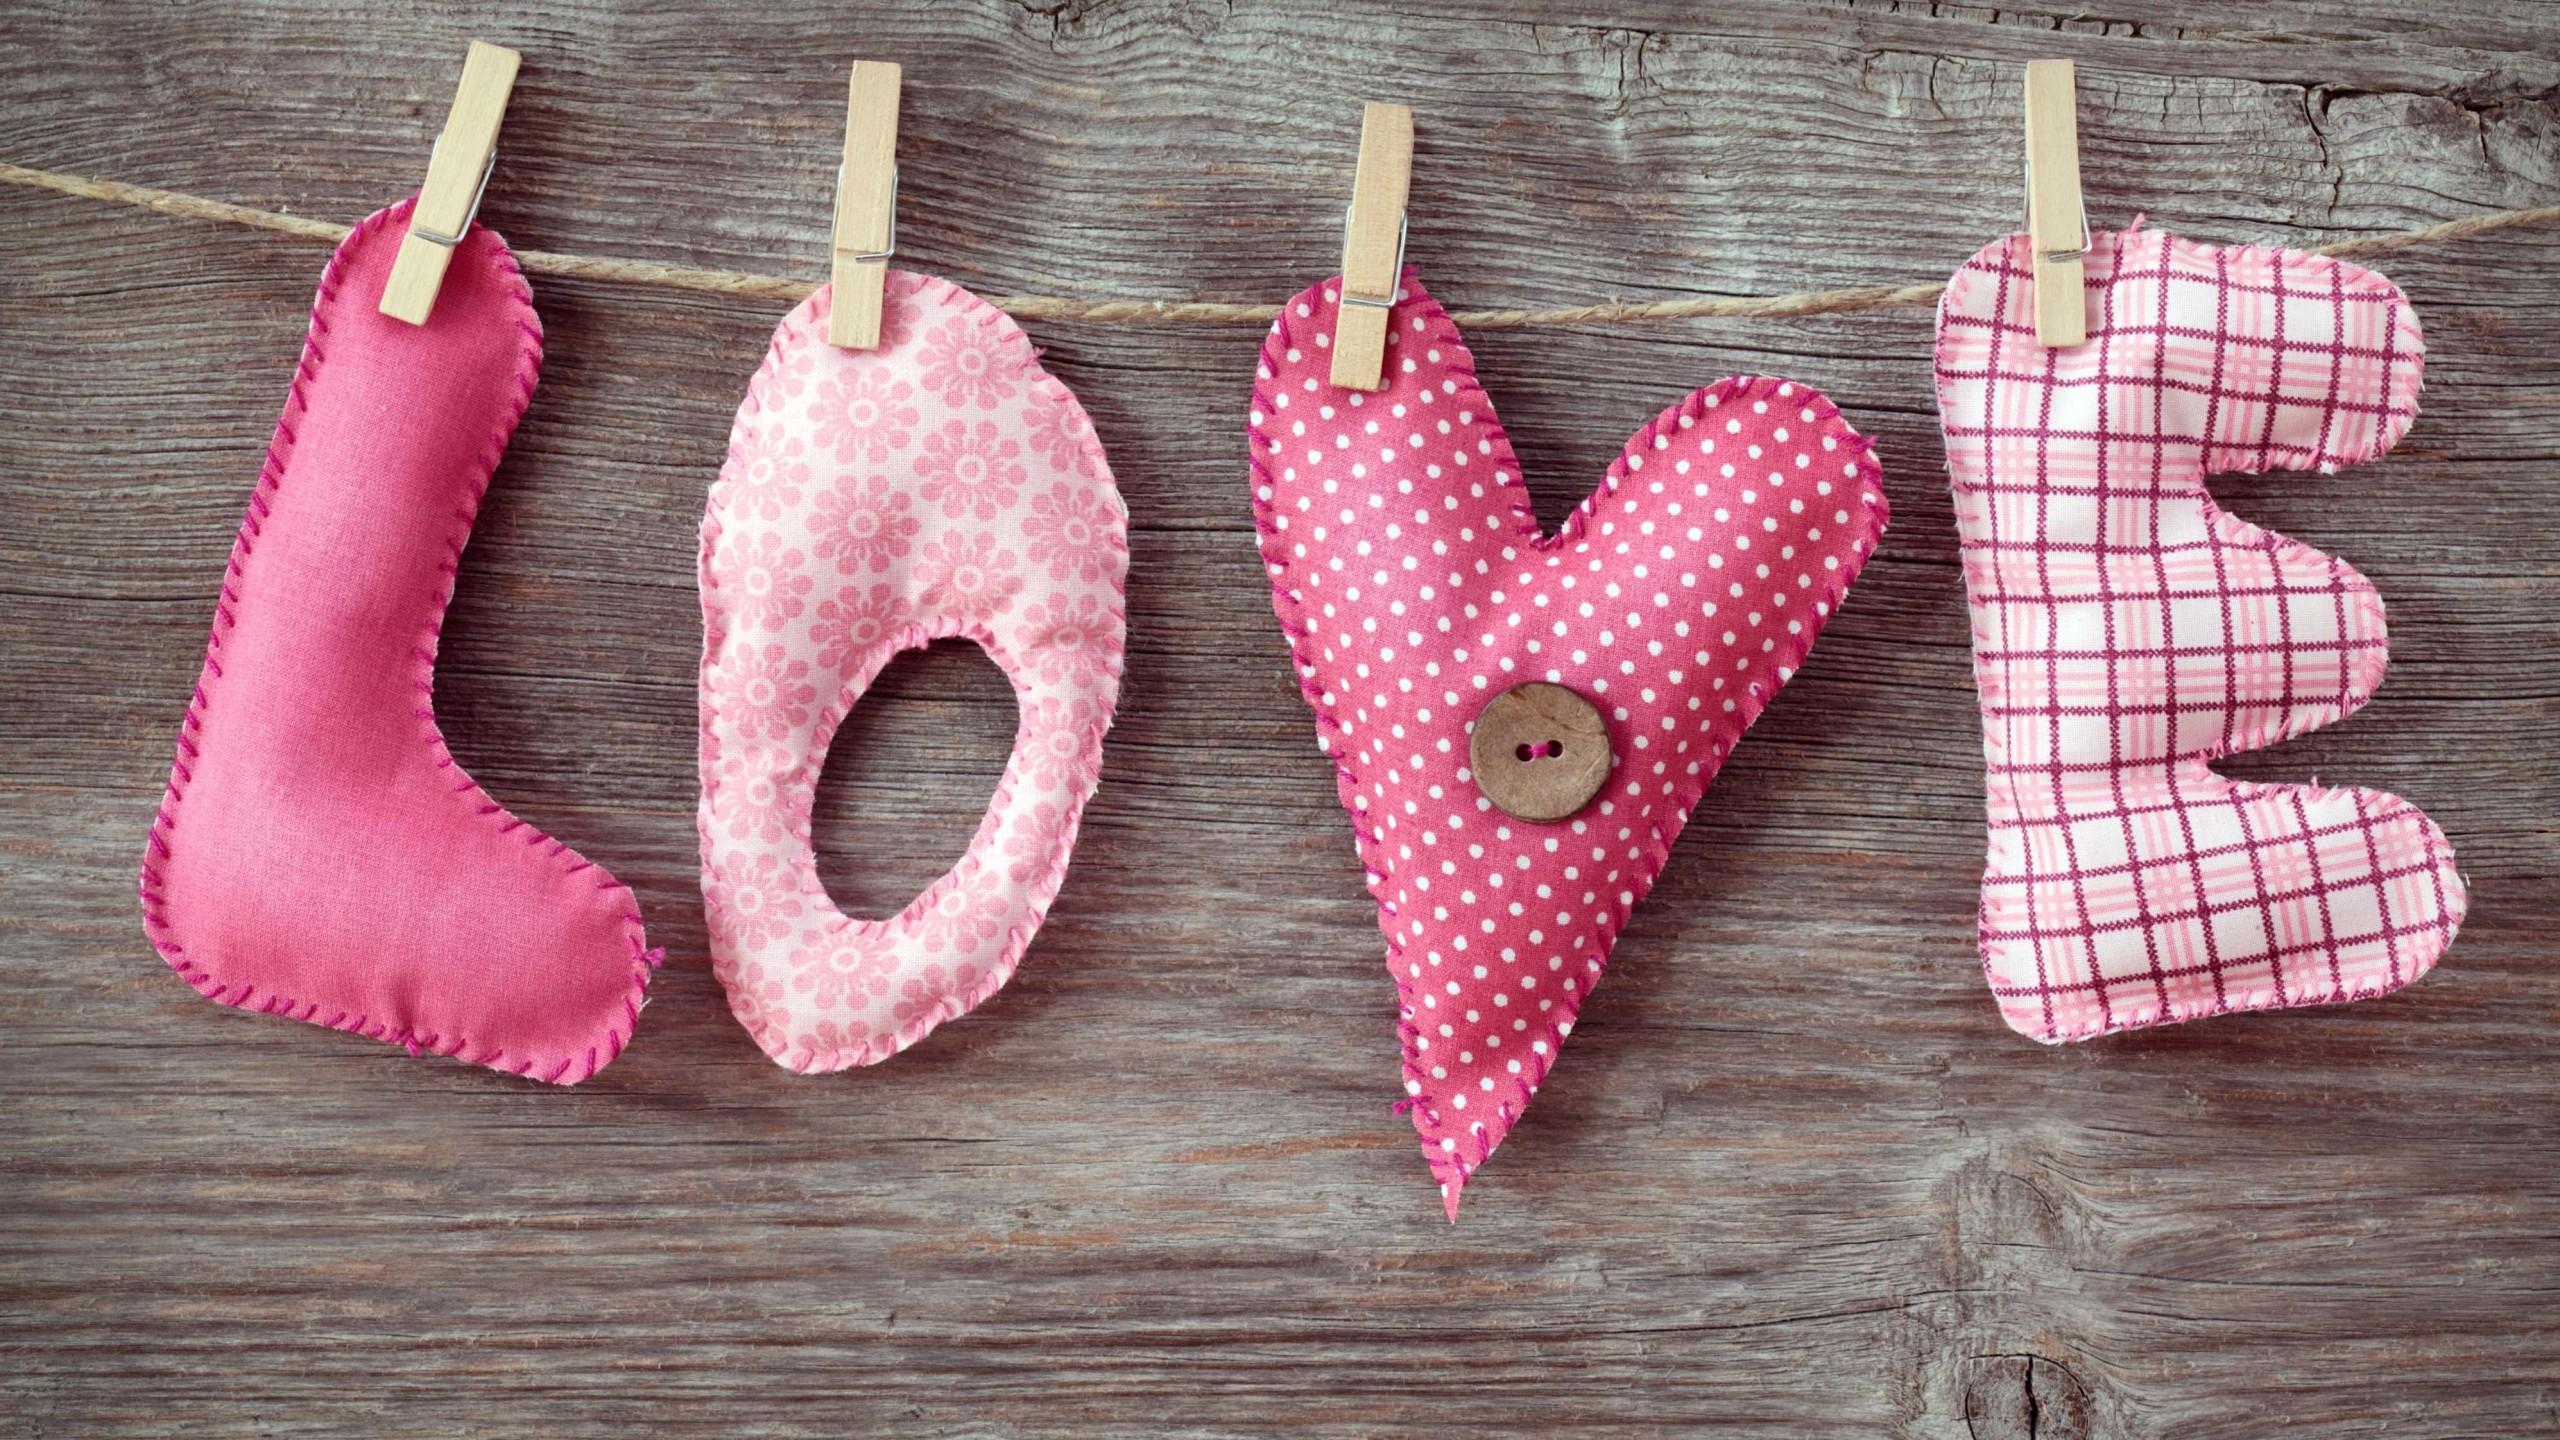 Love Letters Clothespin Wallpaper for Social Media YouTube Channel Art